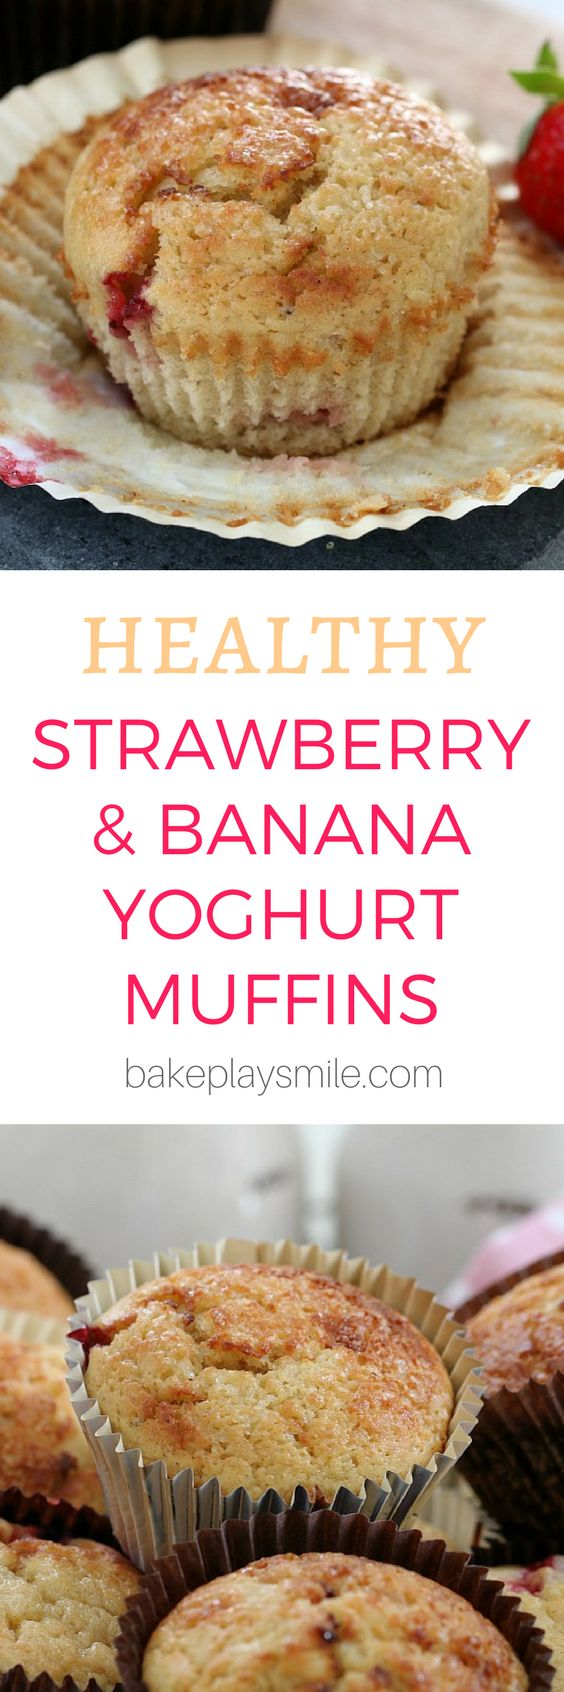 These delicious Strawberry, Banana & Yoghurt Muffins are the BEST!!! They're packed full of bananas and strawberries…. making them seriously YUM!! #banana #strawberry #fruit #yoghurt #yogurt #muffins #thermomix #conventional #healthy #recipe #best #easy #kids